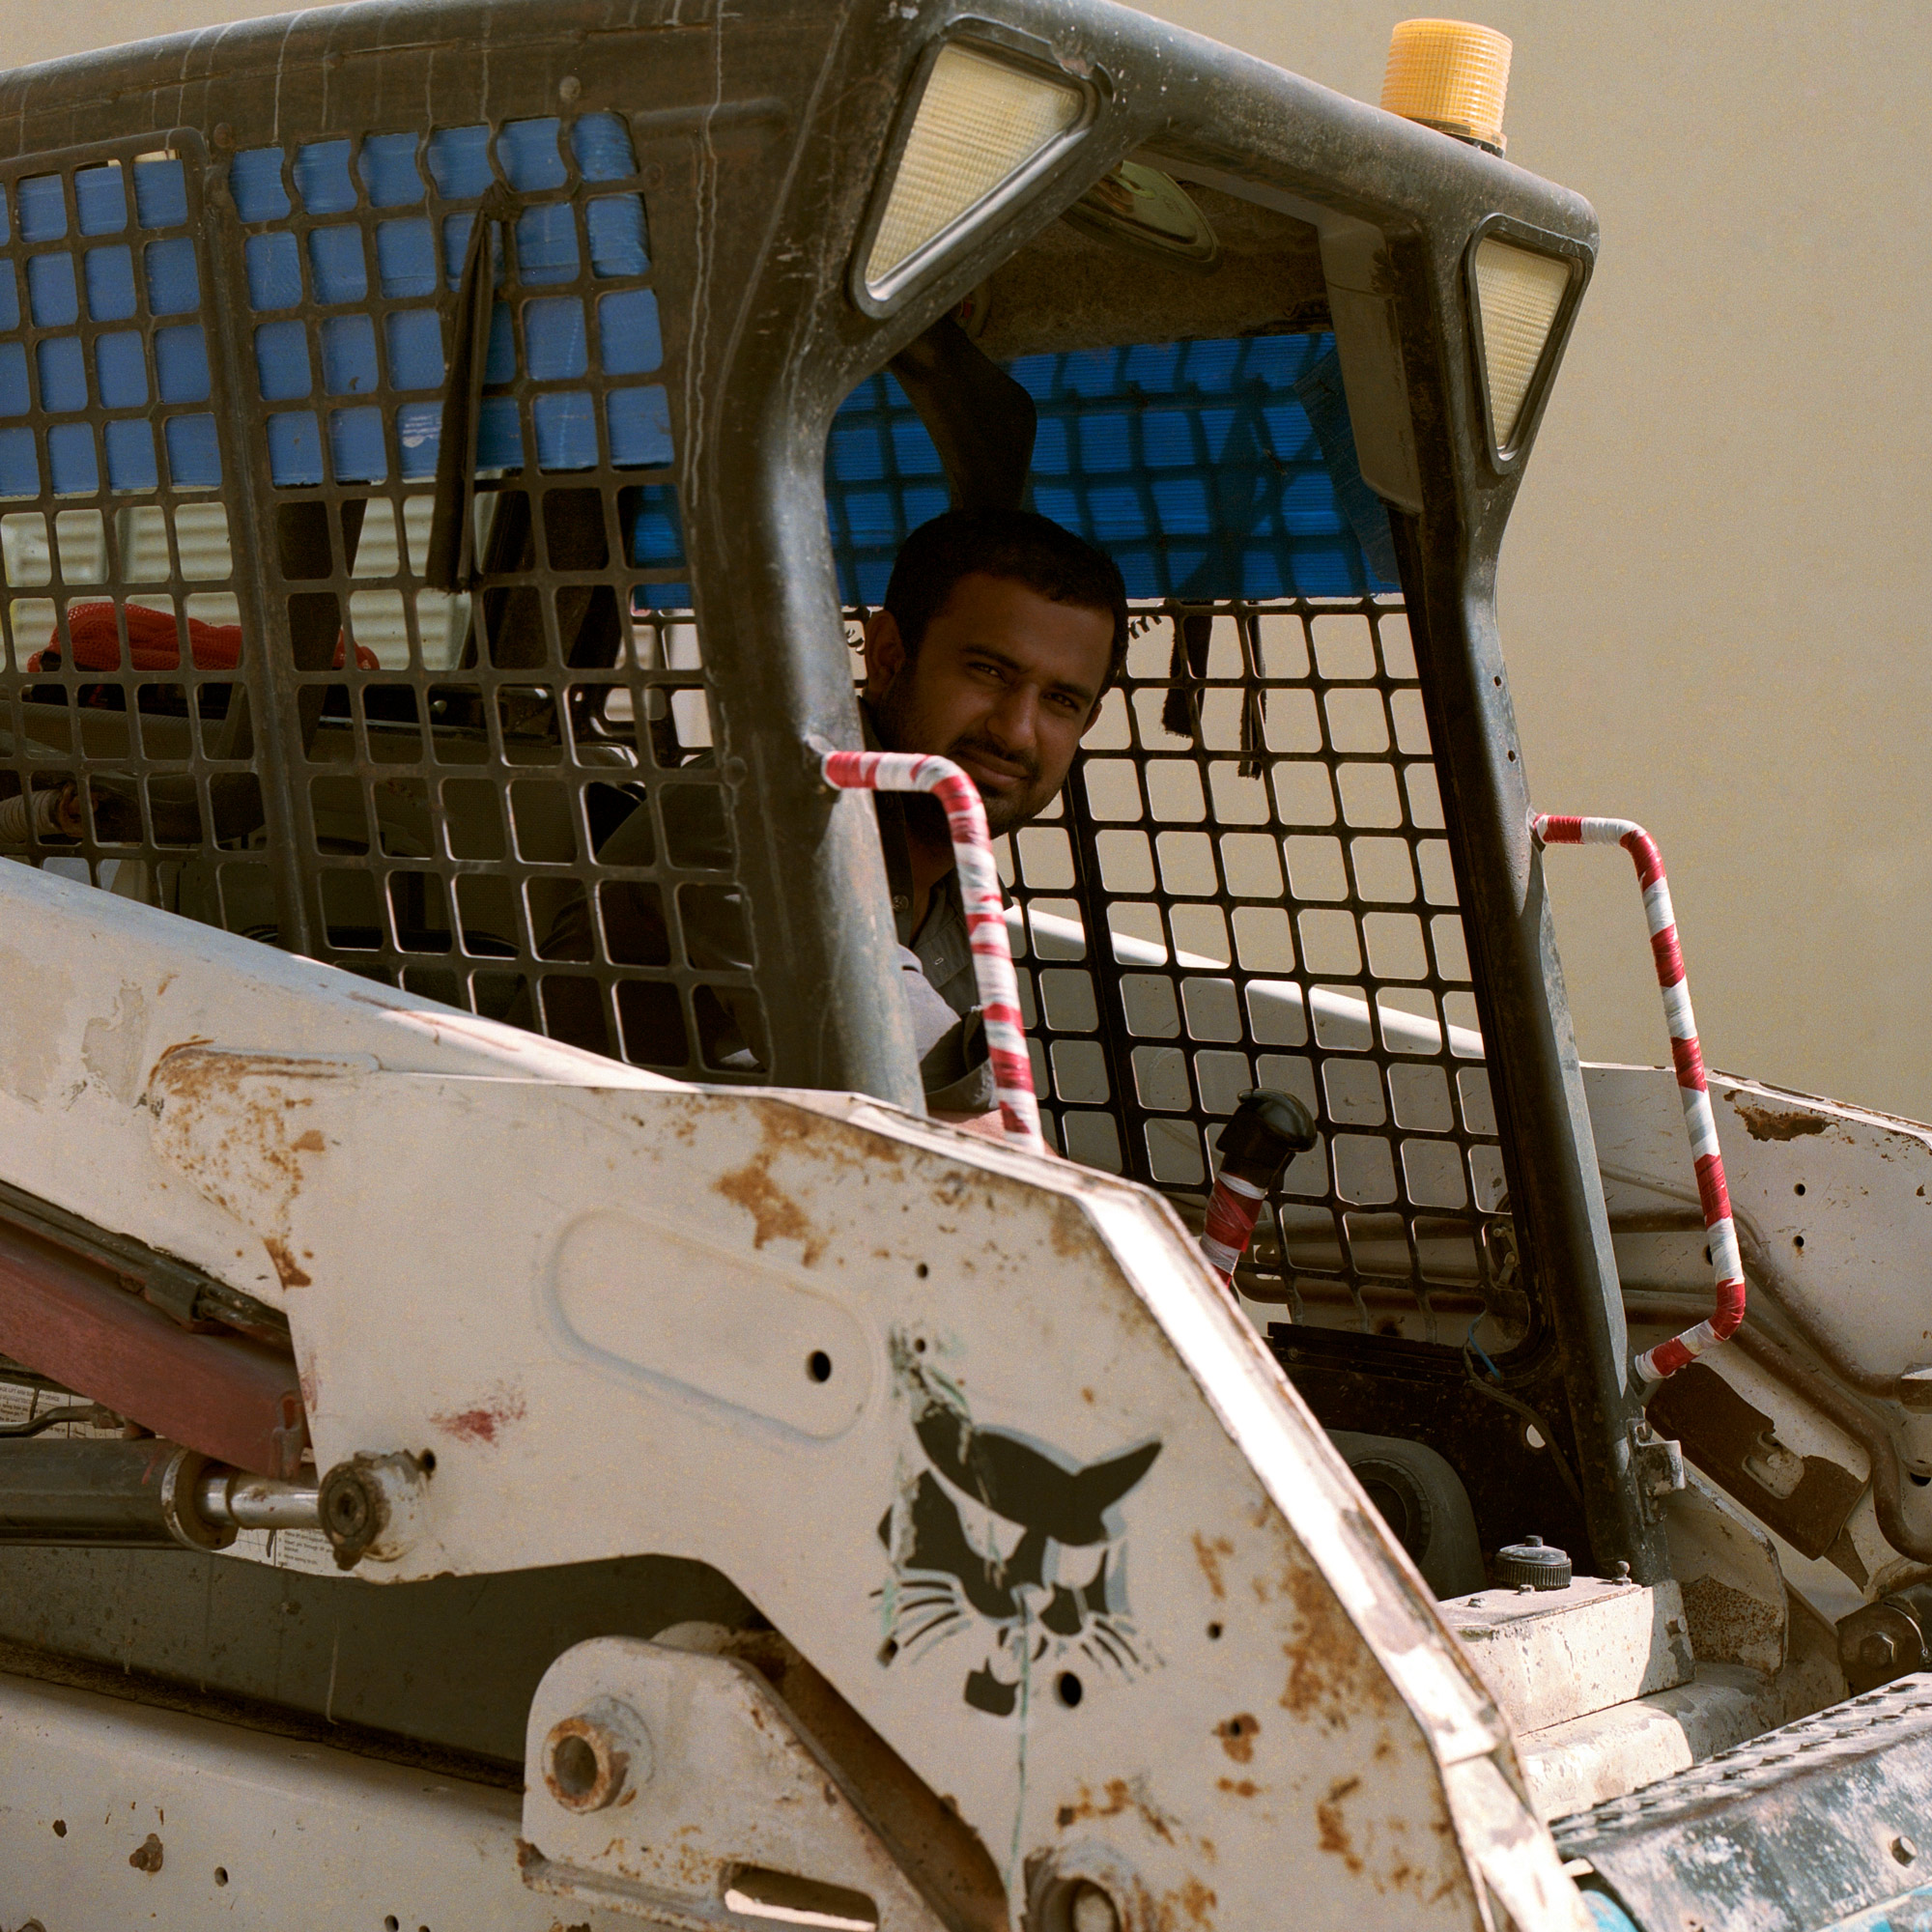 Indian construction worker at work with digger, on worksite. Dubai Labourers.